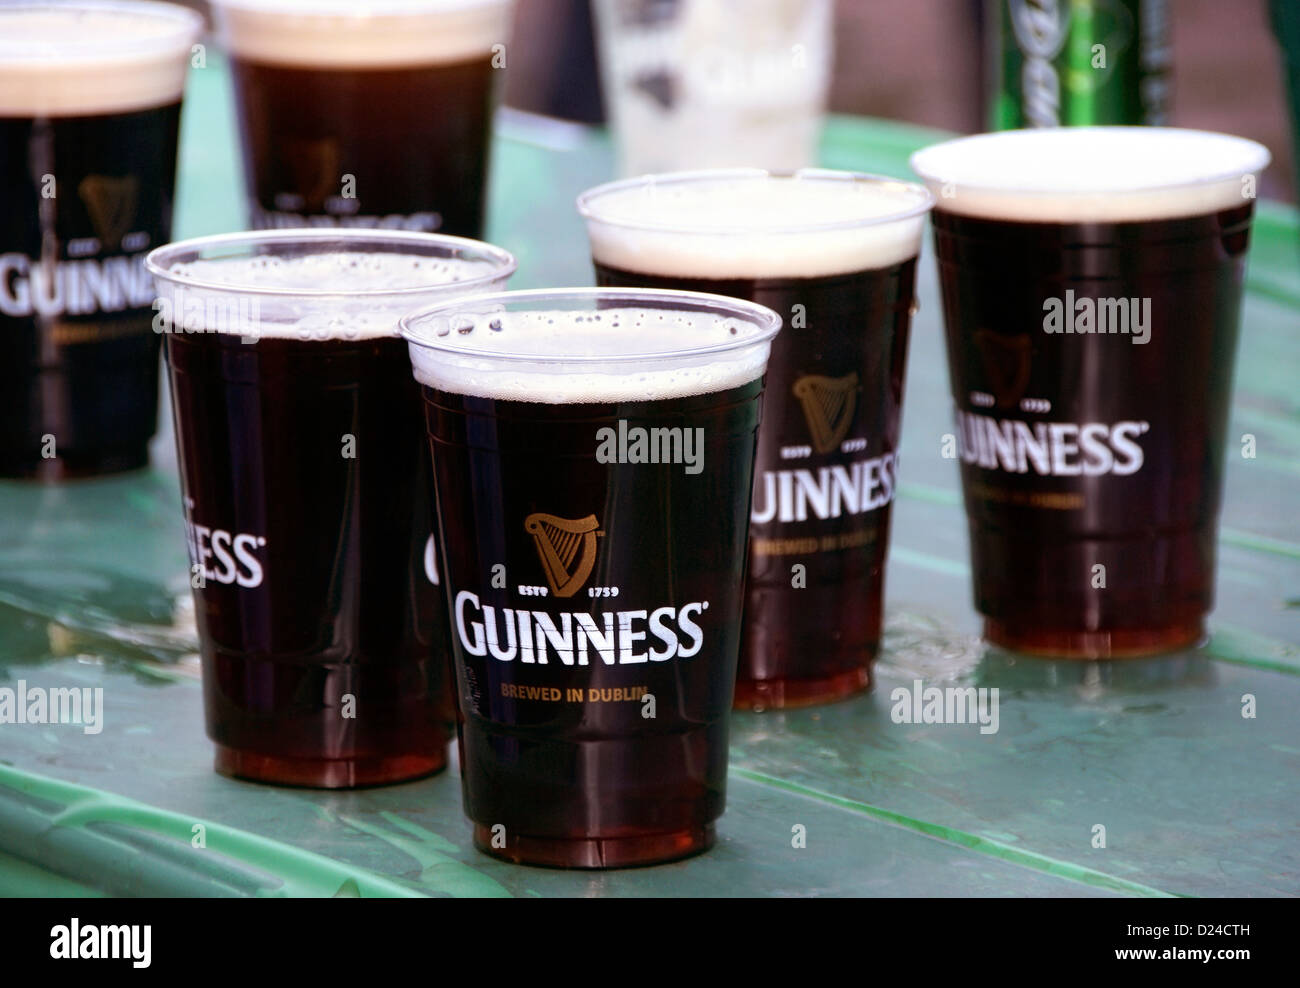 Guinness beer cups on a green table during St. Patrick's day celebration - Stock Image